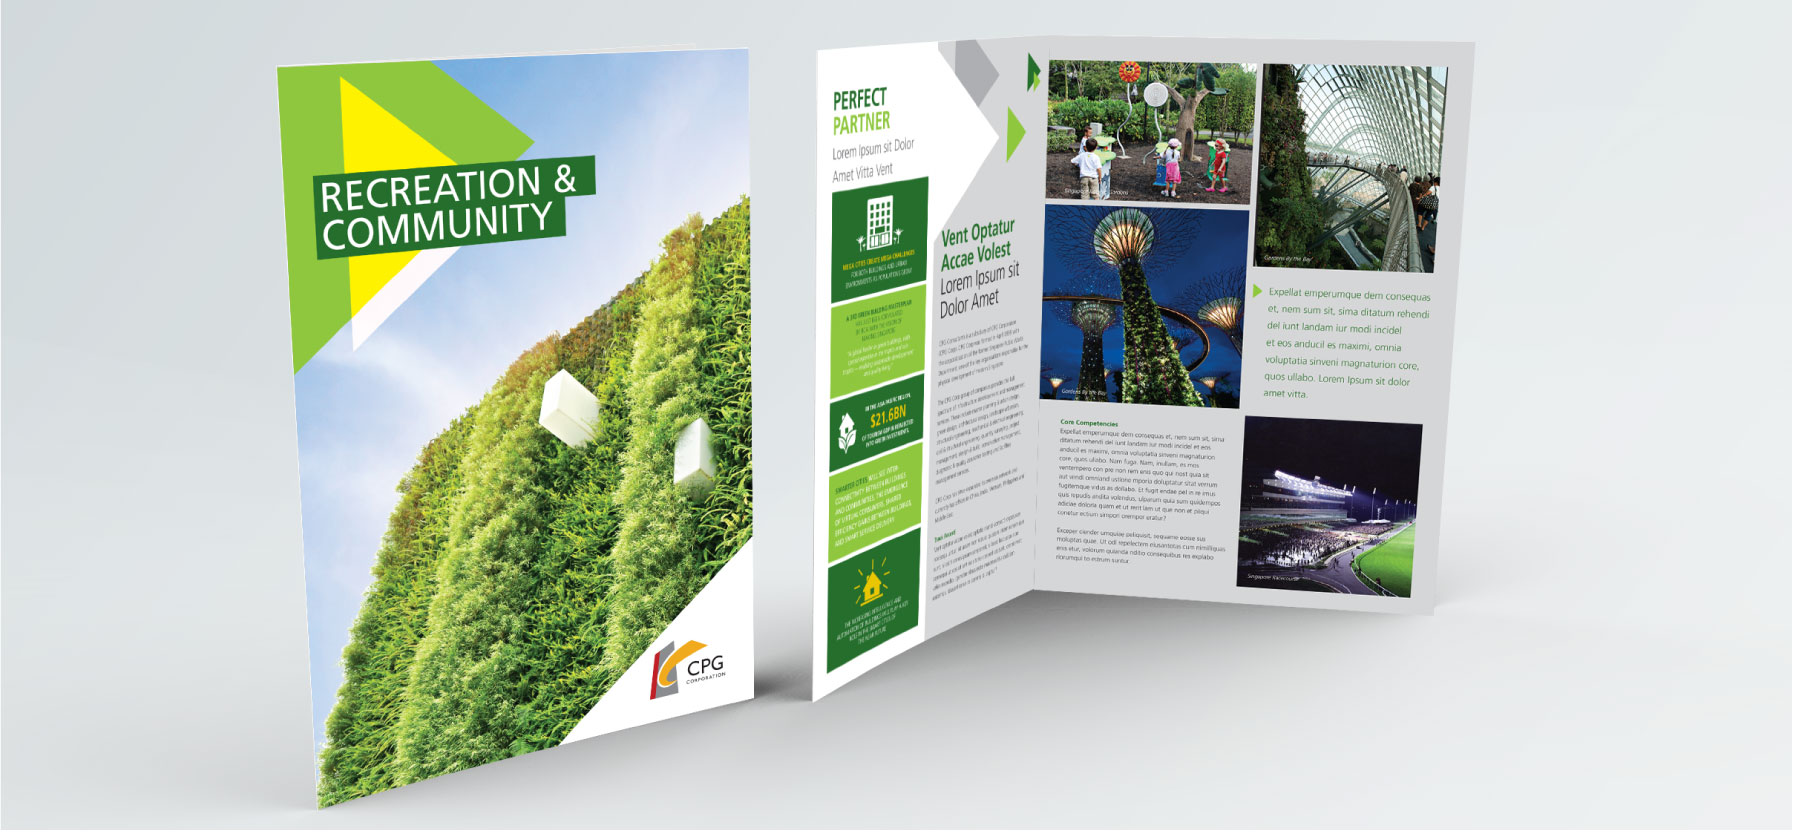 creative design Creative art direction, concept and design layout for CPG corporate folder and profile